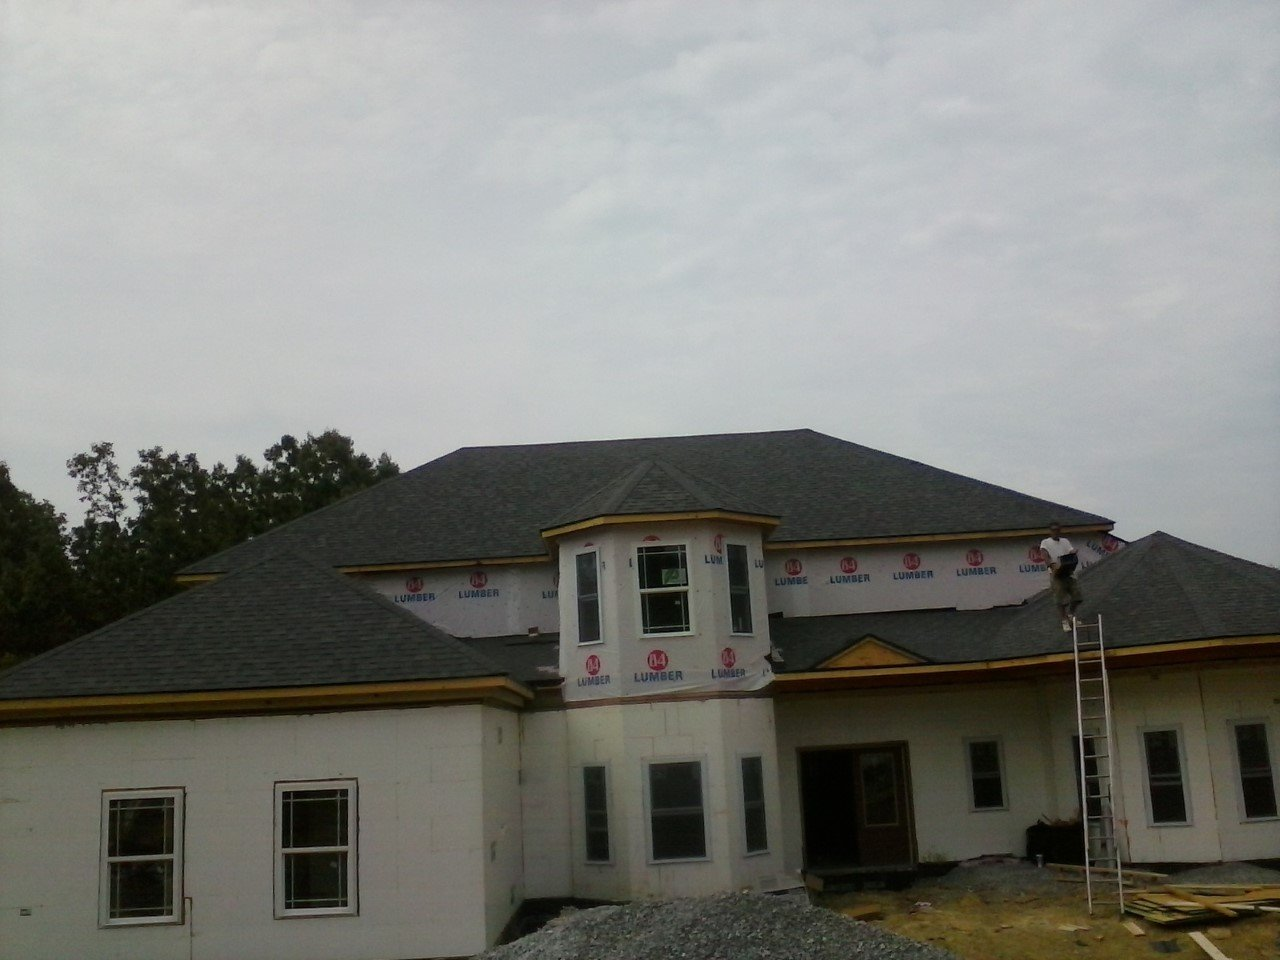 New roof construction in Lexington, KY